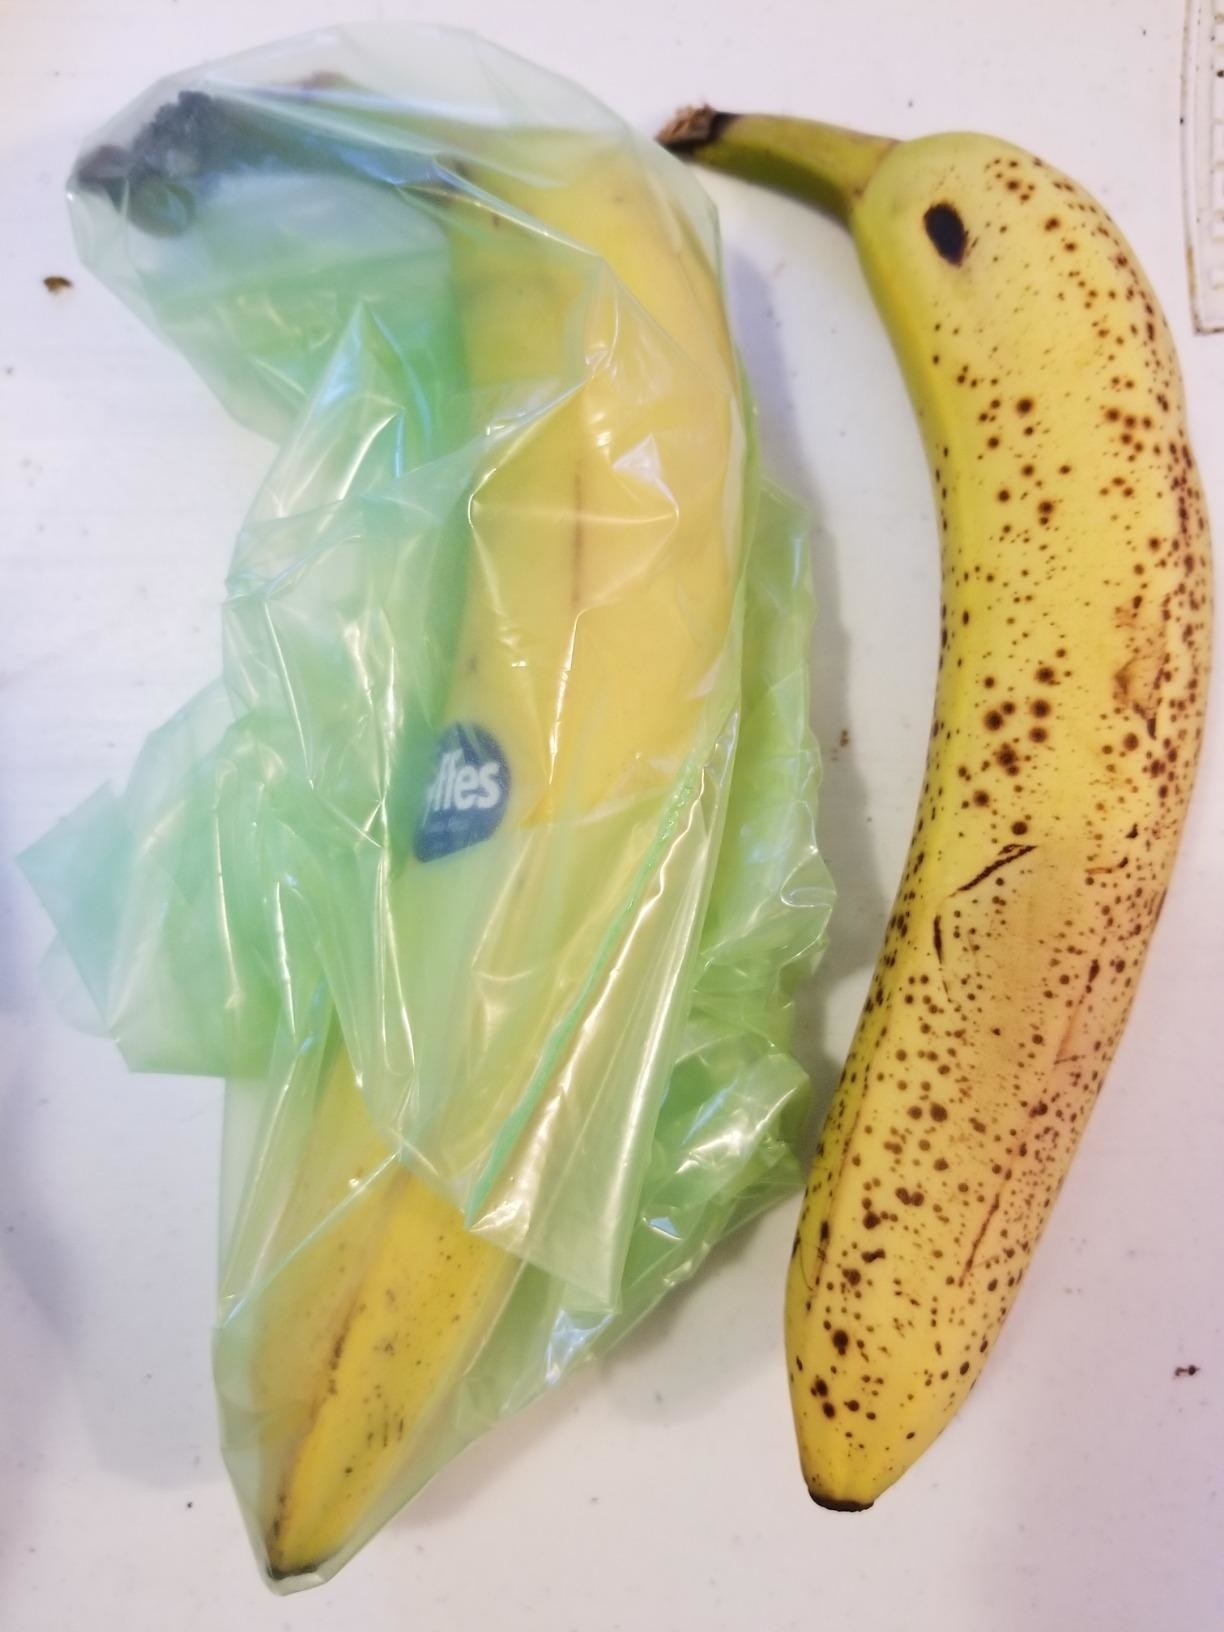 Reviewer image of banana in bag and banana outside of bag with brown spots